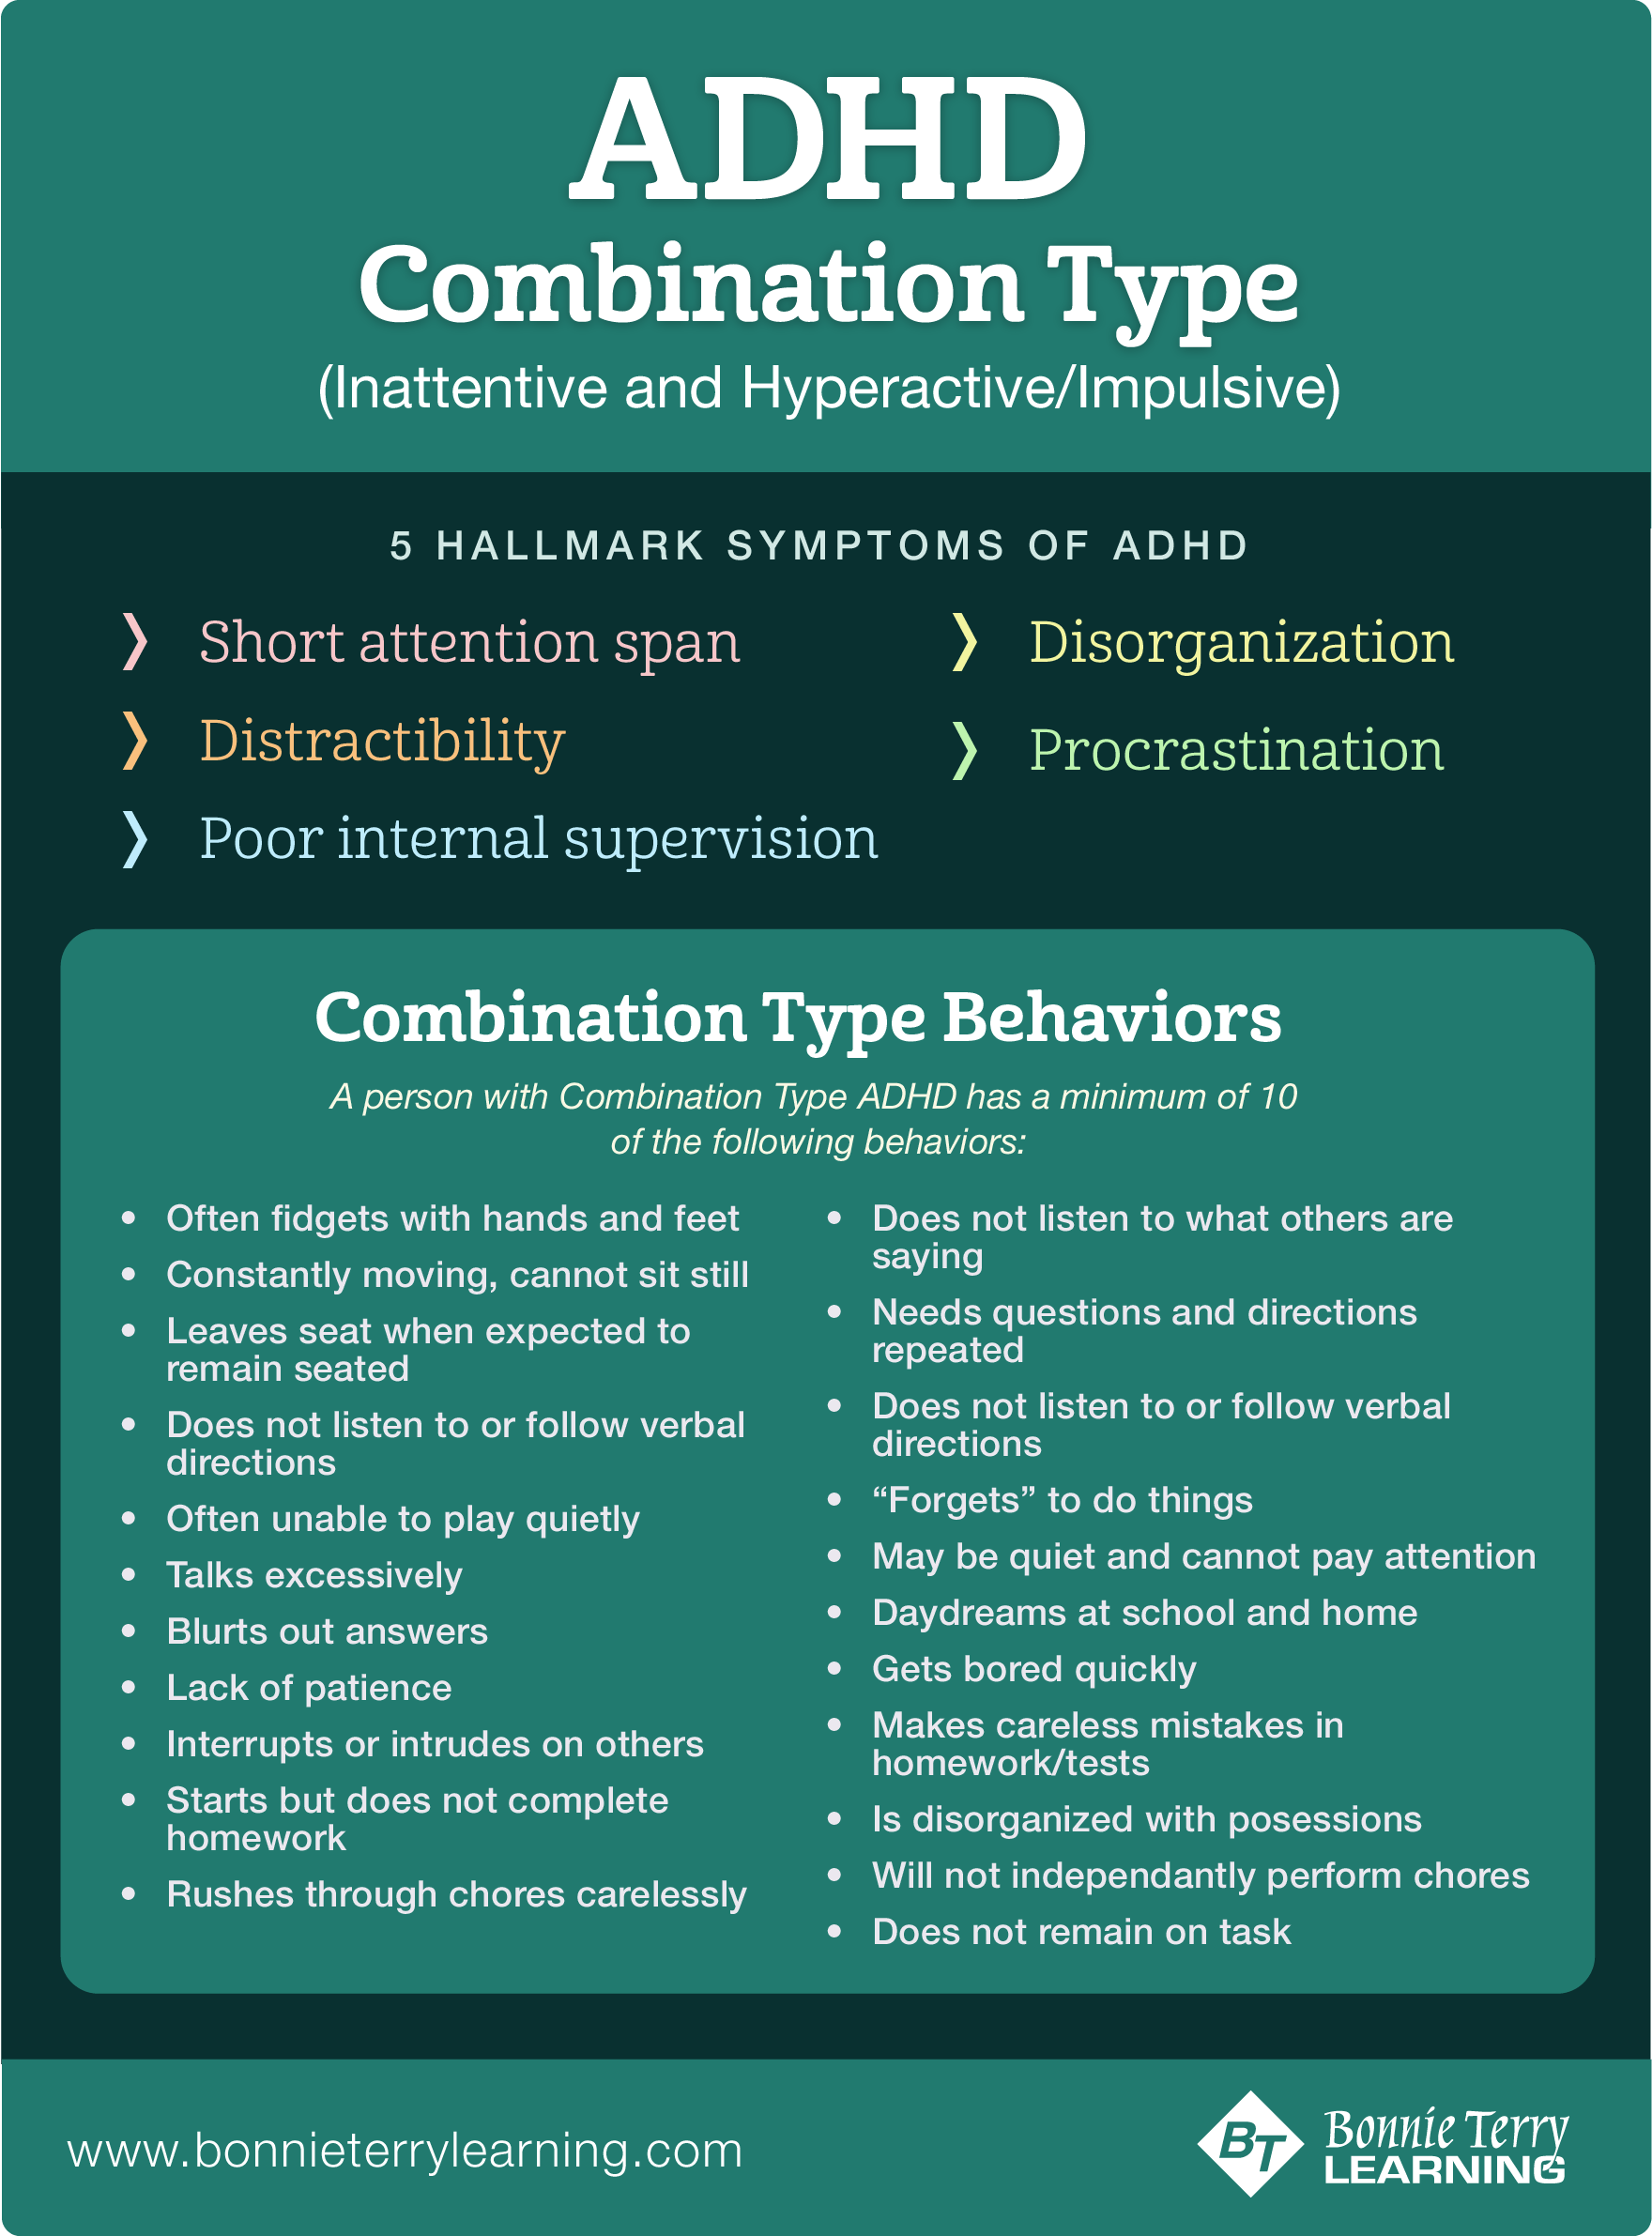 ADHD bination Type Symptoms and Behaviors ADHD